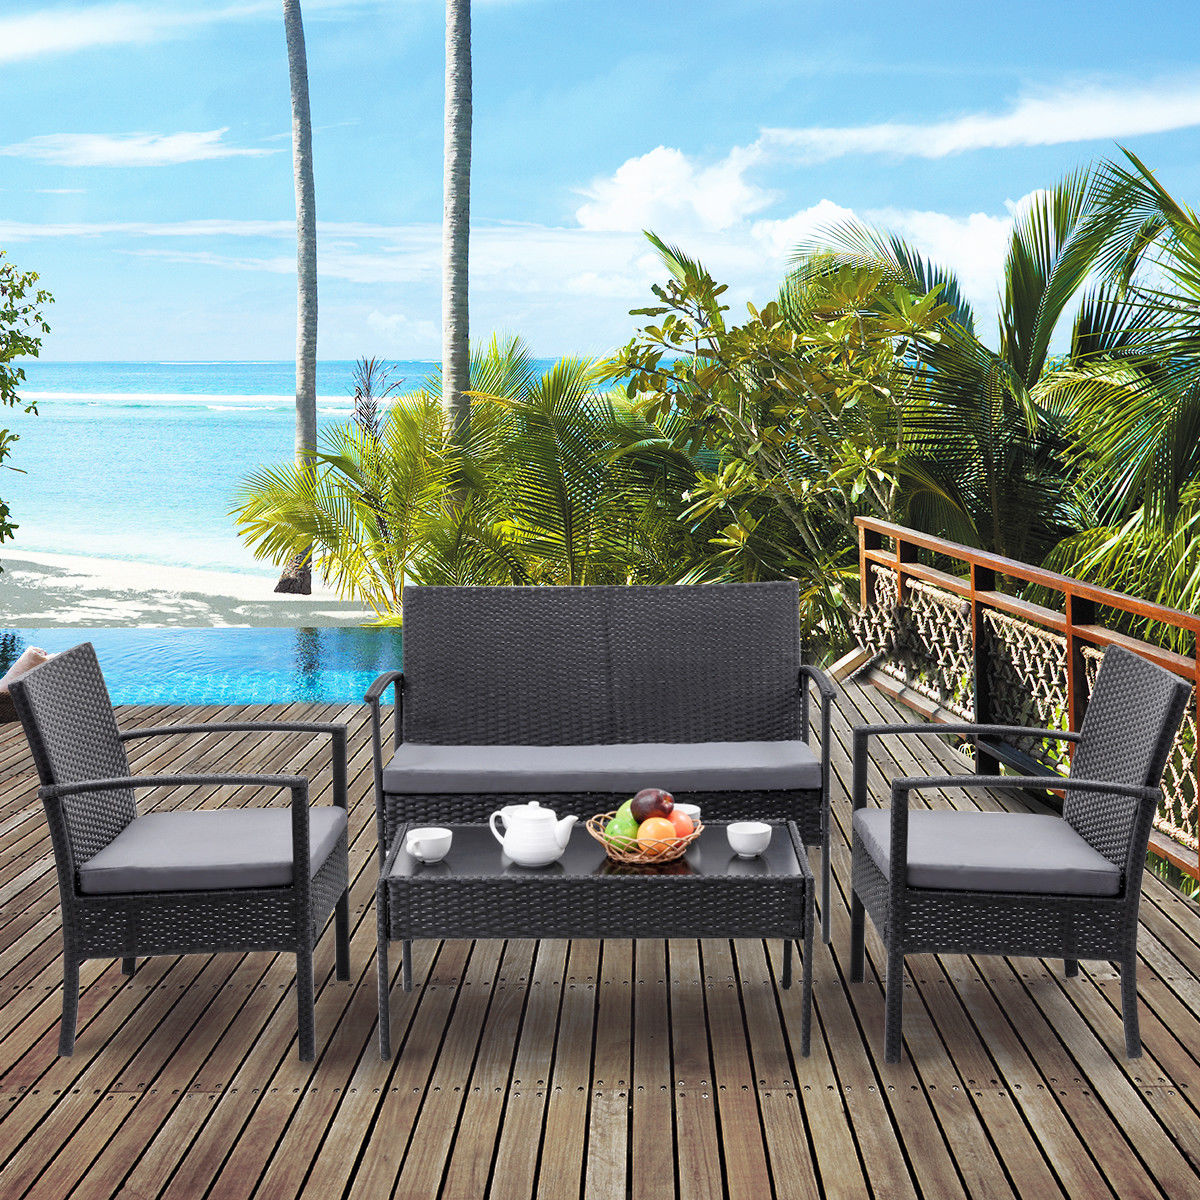 Costway 4 PCS Outdoor Patio Rattan Wicker Furniture Set Table Sofa Cushioned Deck Black by Costway